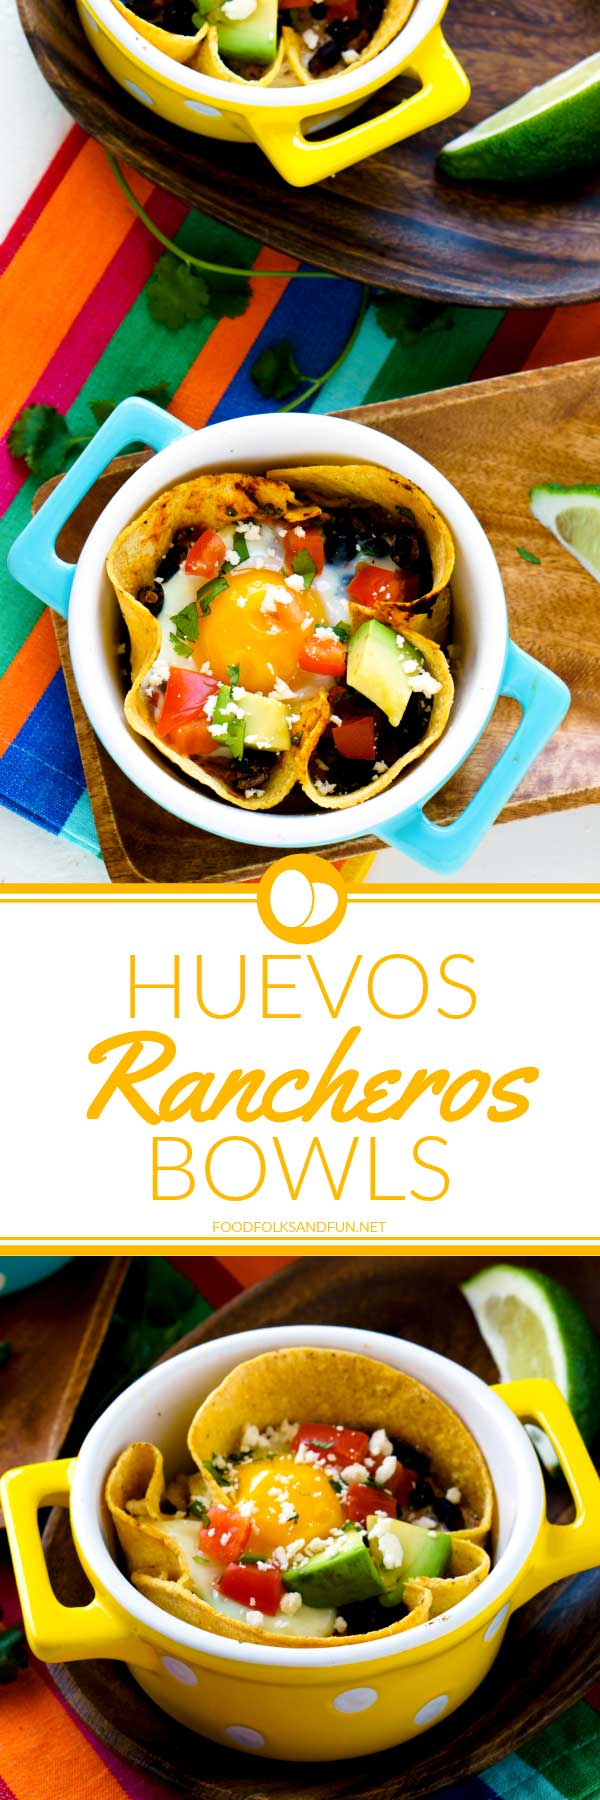 These Healthy Huevos Rancheros Breakfast Bowls are not only easy to make but so satisfying and good for you! via @foodfolksandfun